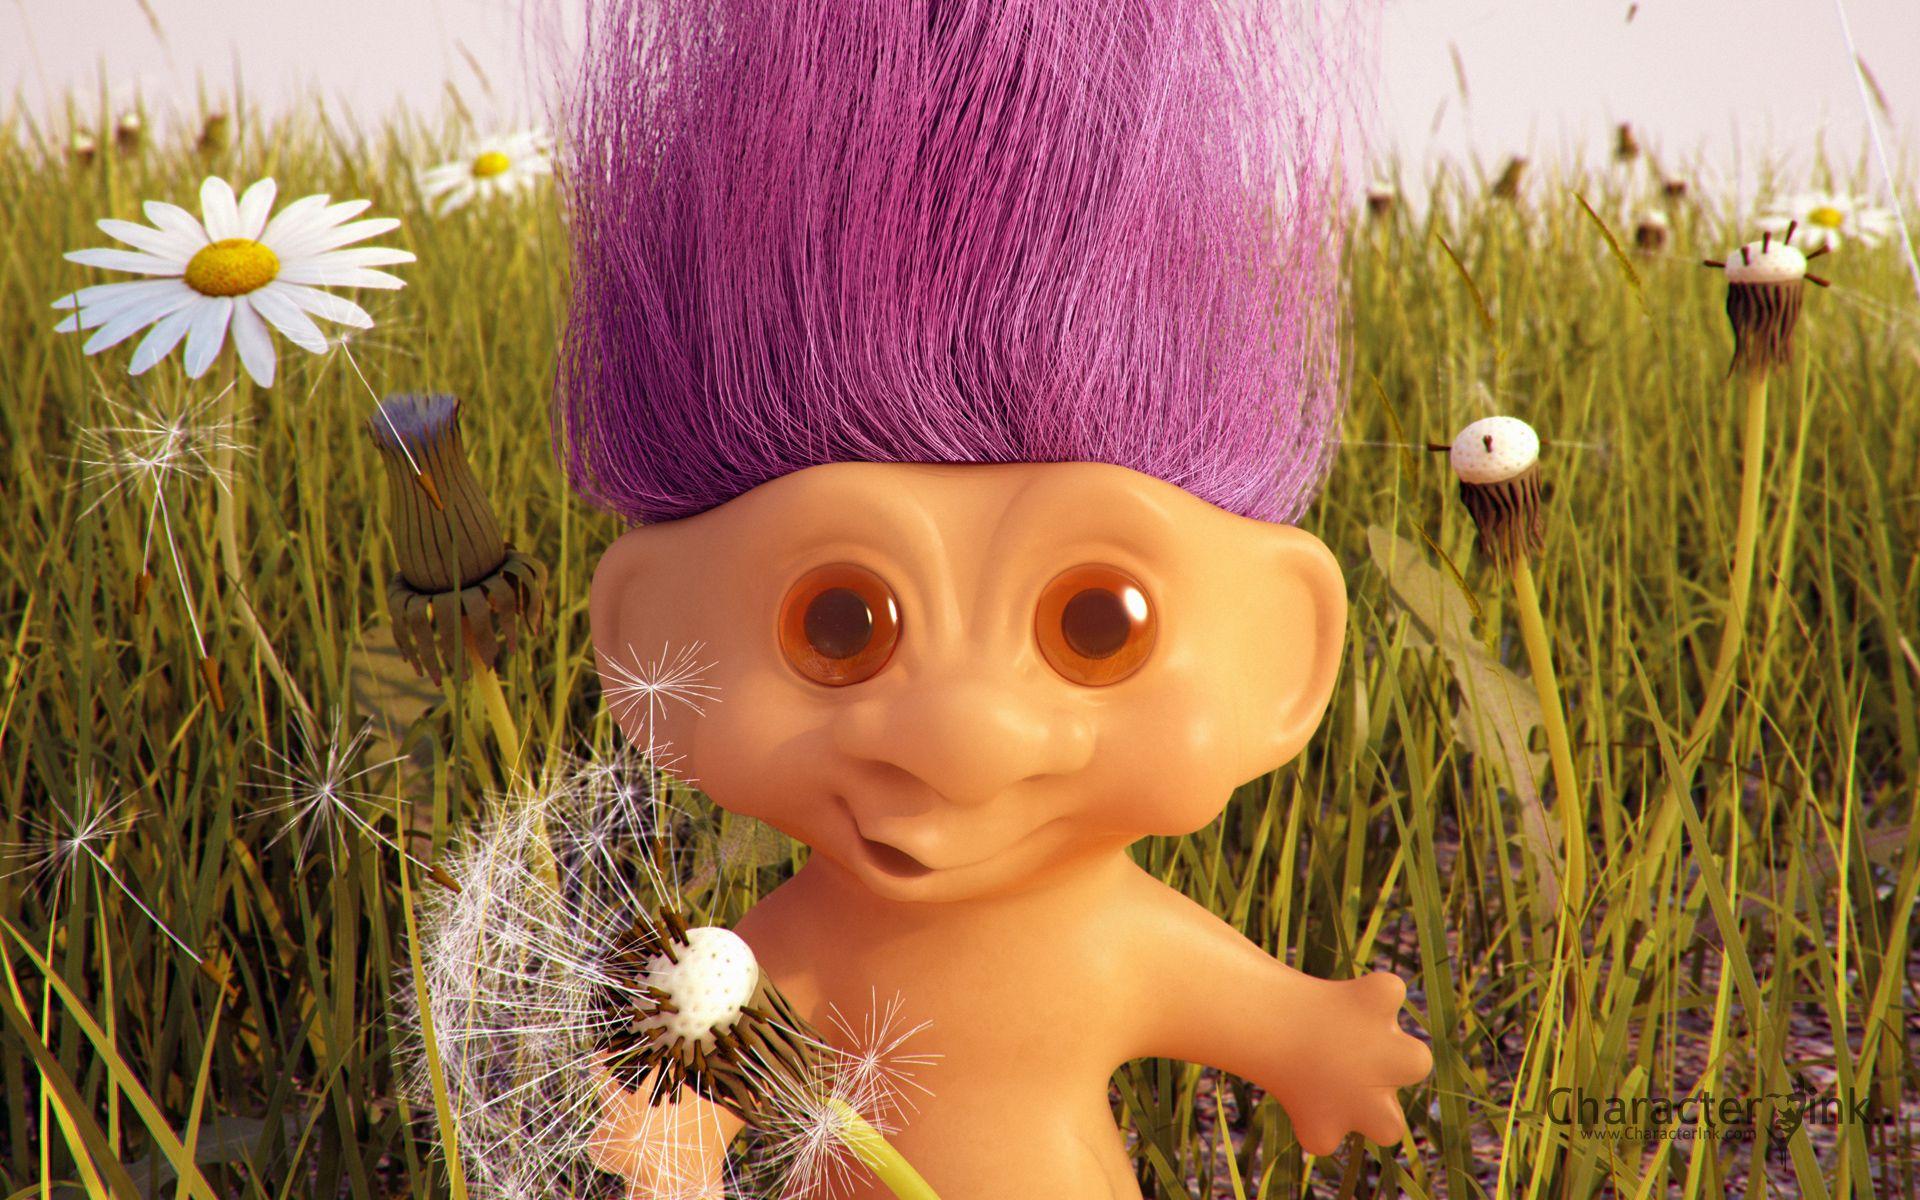 troll dolls | Wallpaper version 1920×1200 and 1920×1080 . Ask if you want other .